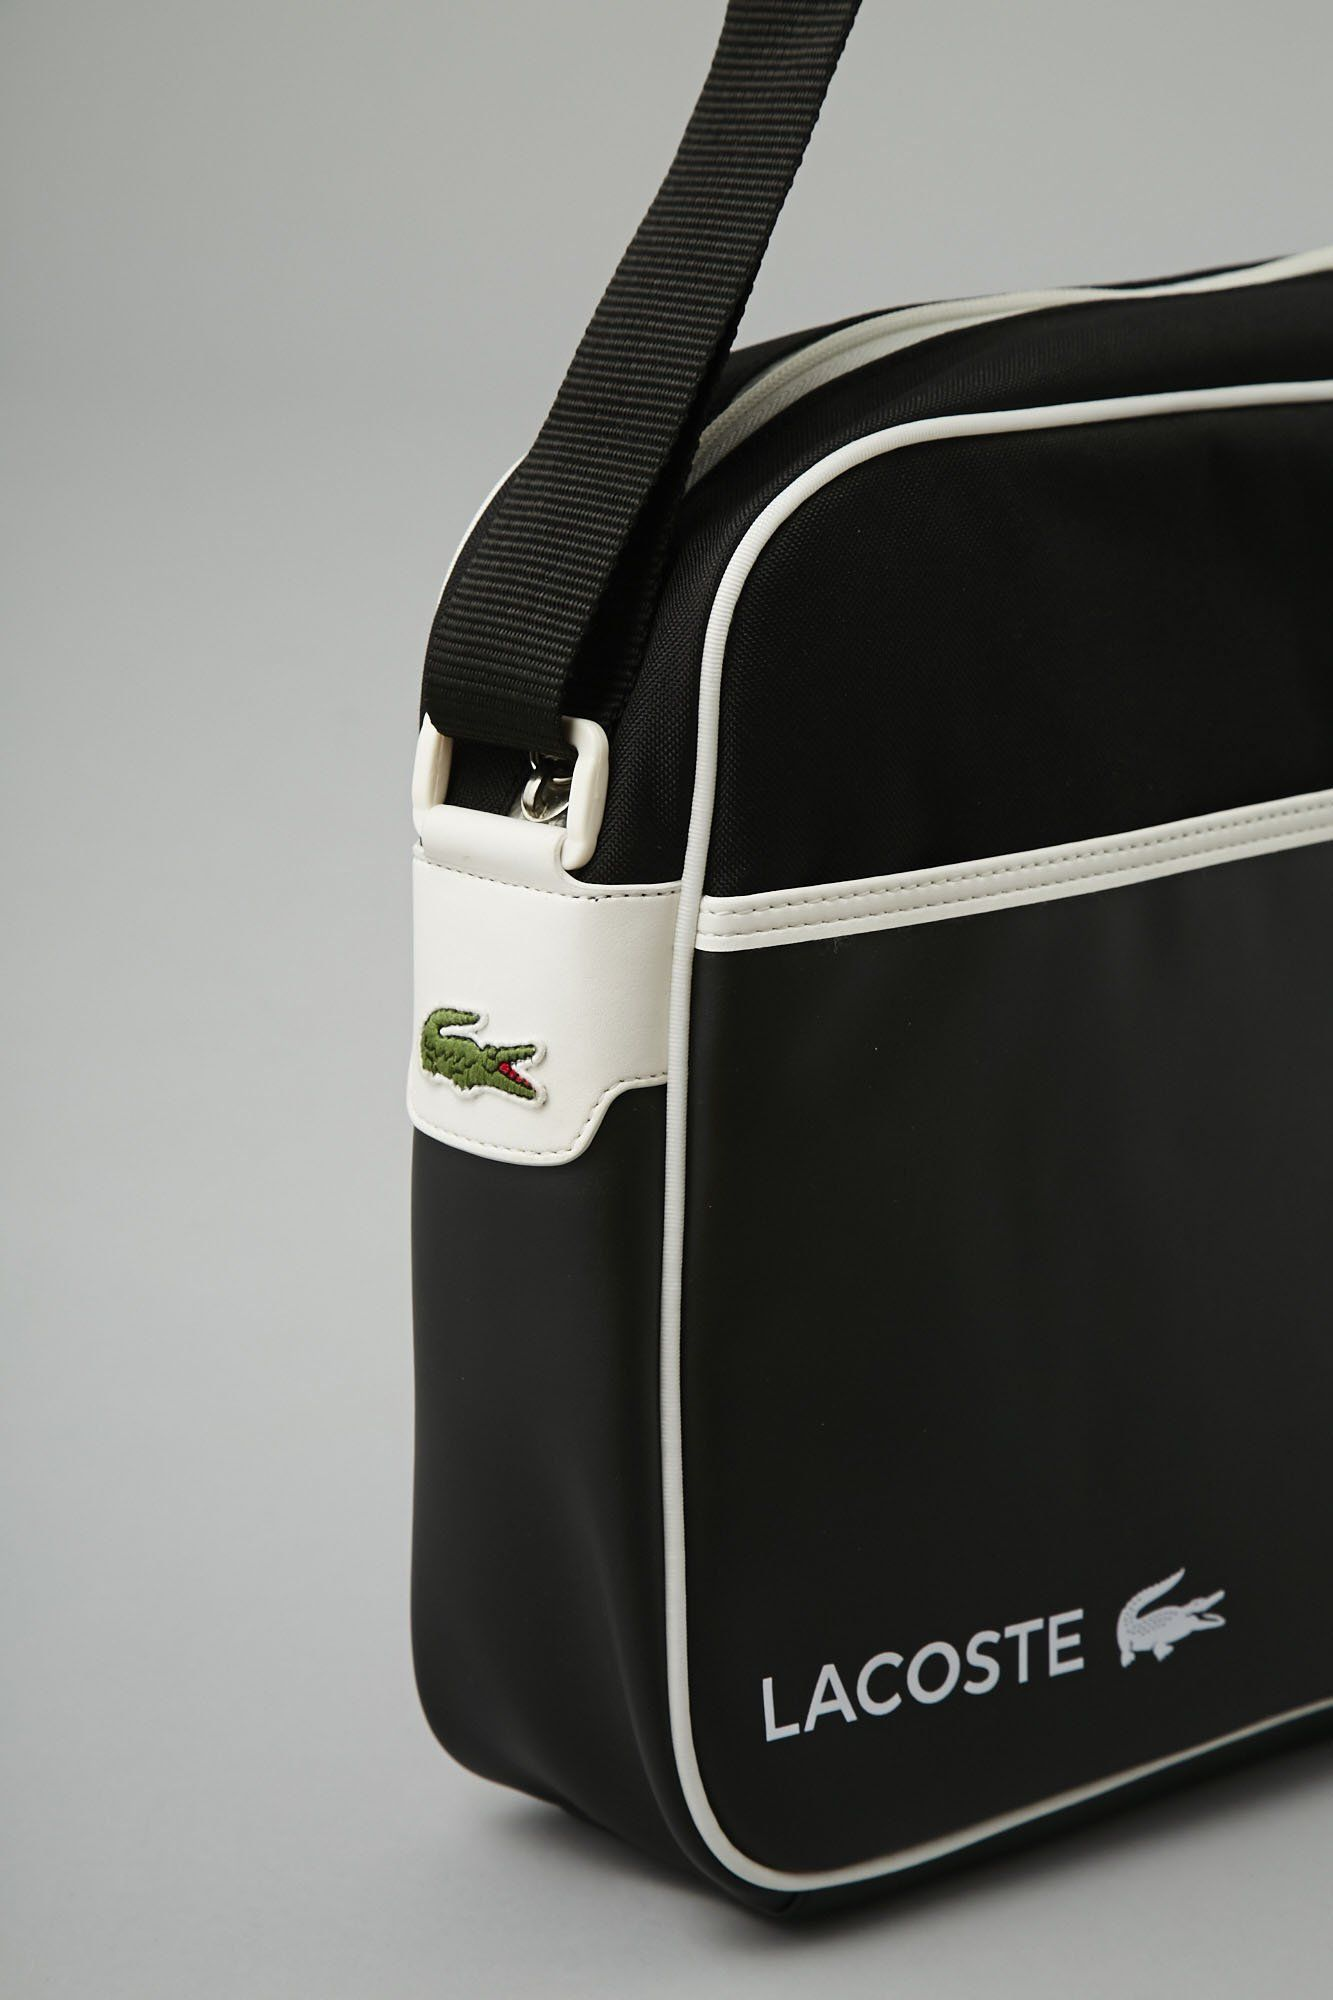 new concept fabdd f6bd0 Lacoste Airline Bag   Bags   Wallets  Accomplished